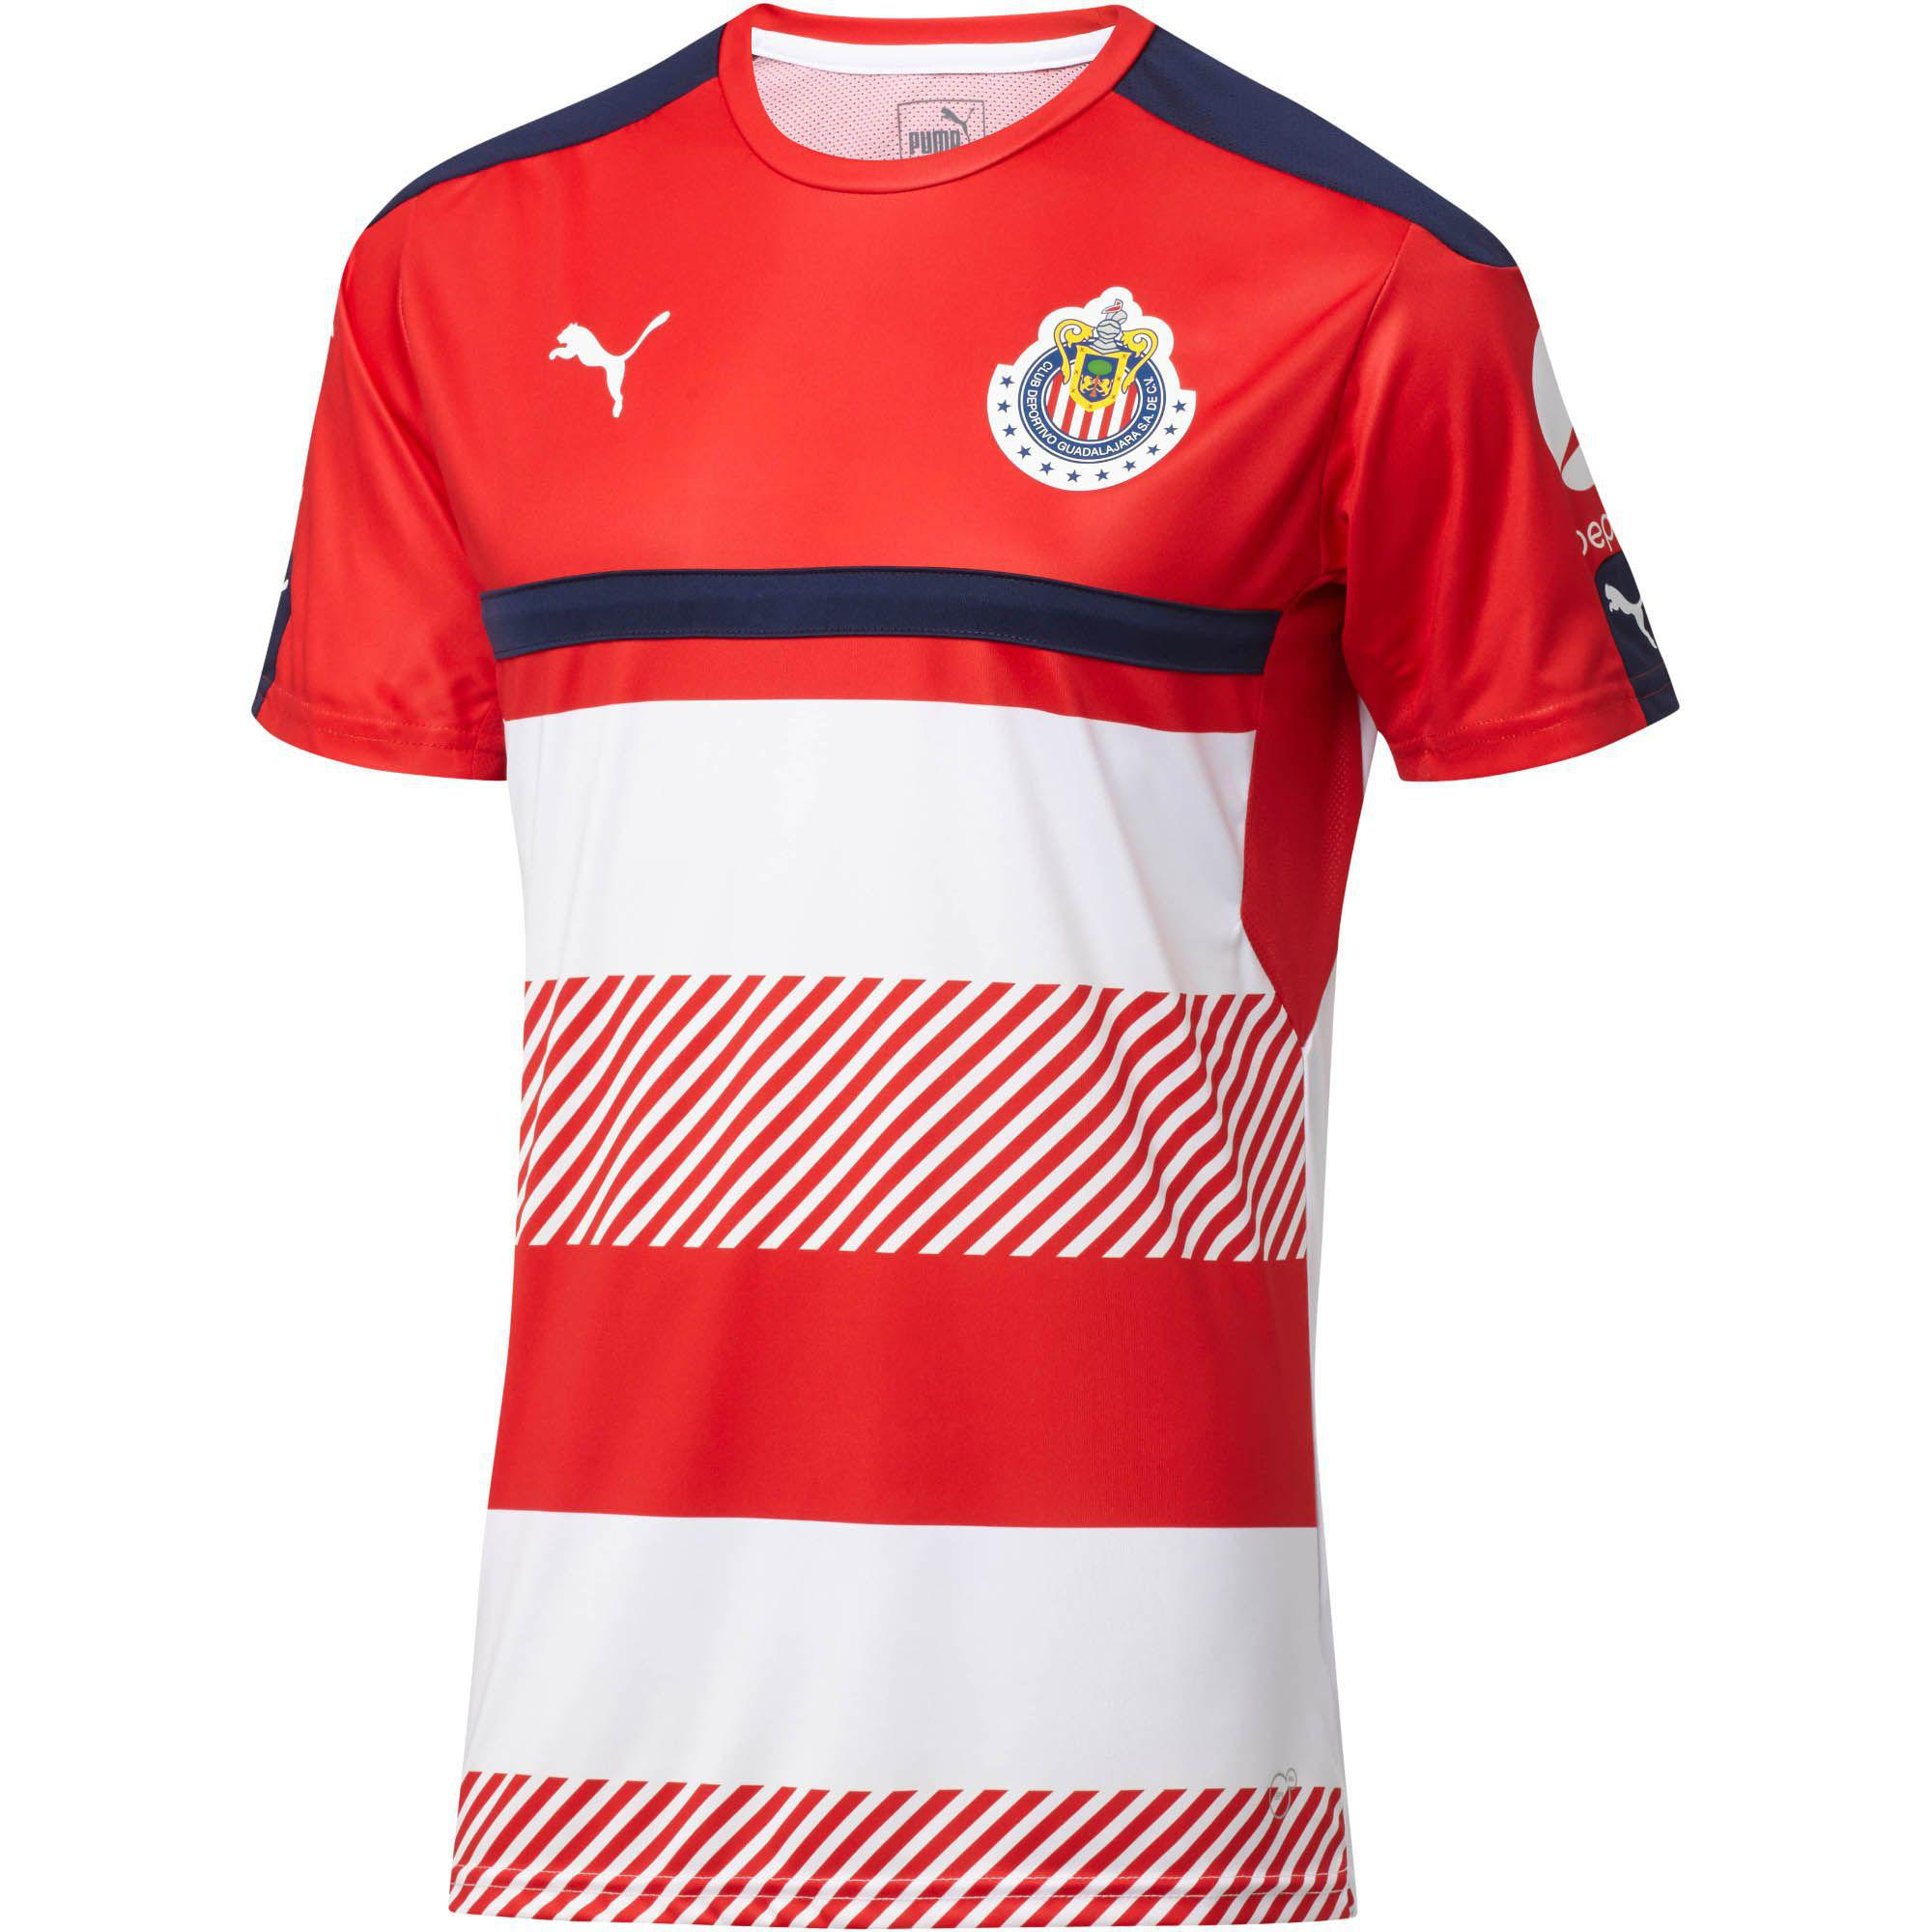 size 40 c2282 87a8a PUMA Chivas Training Shirt in Red for Men - Lyst